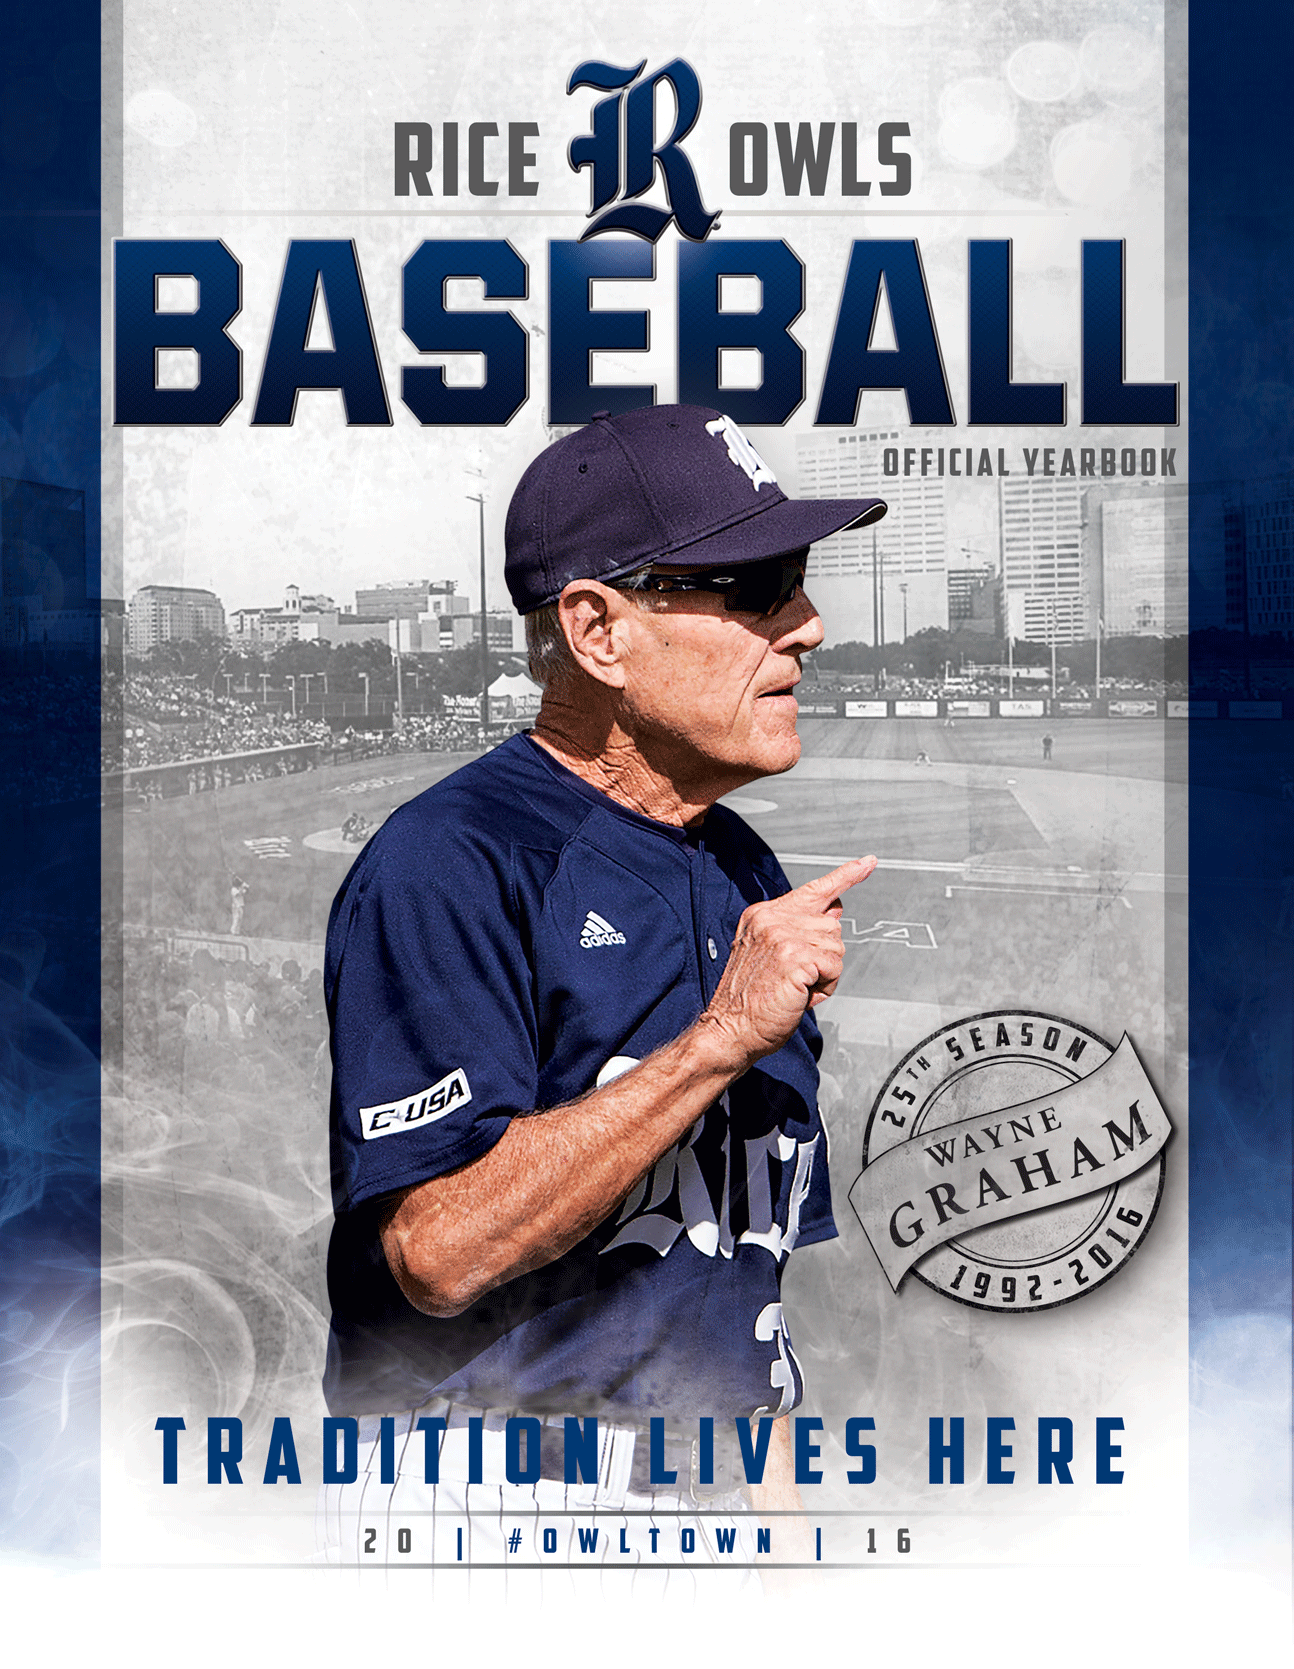 The 2016 Rice Owls Baseball Official Yearbook Commemorates Head Coach Wayne Graham S 25th Season College Baseball Baseball College